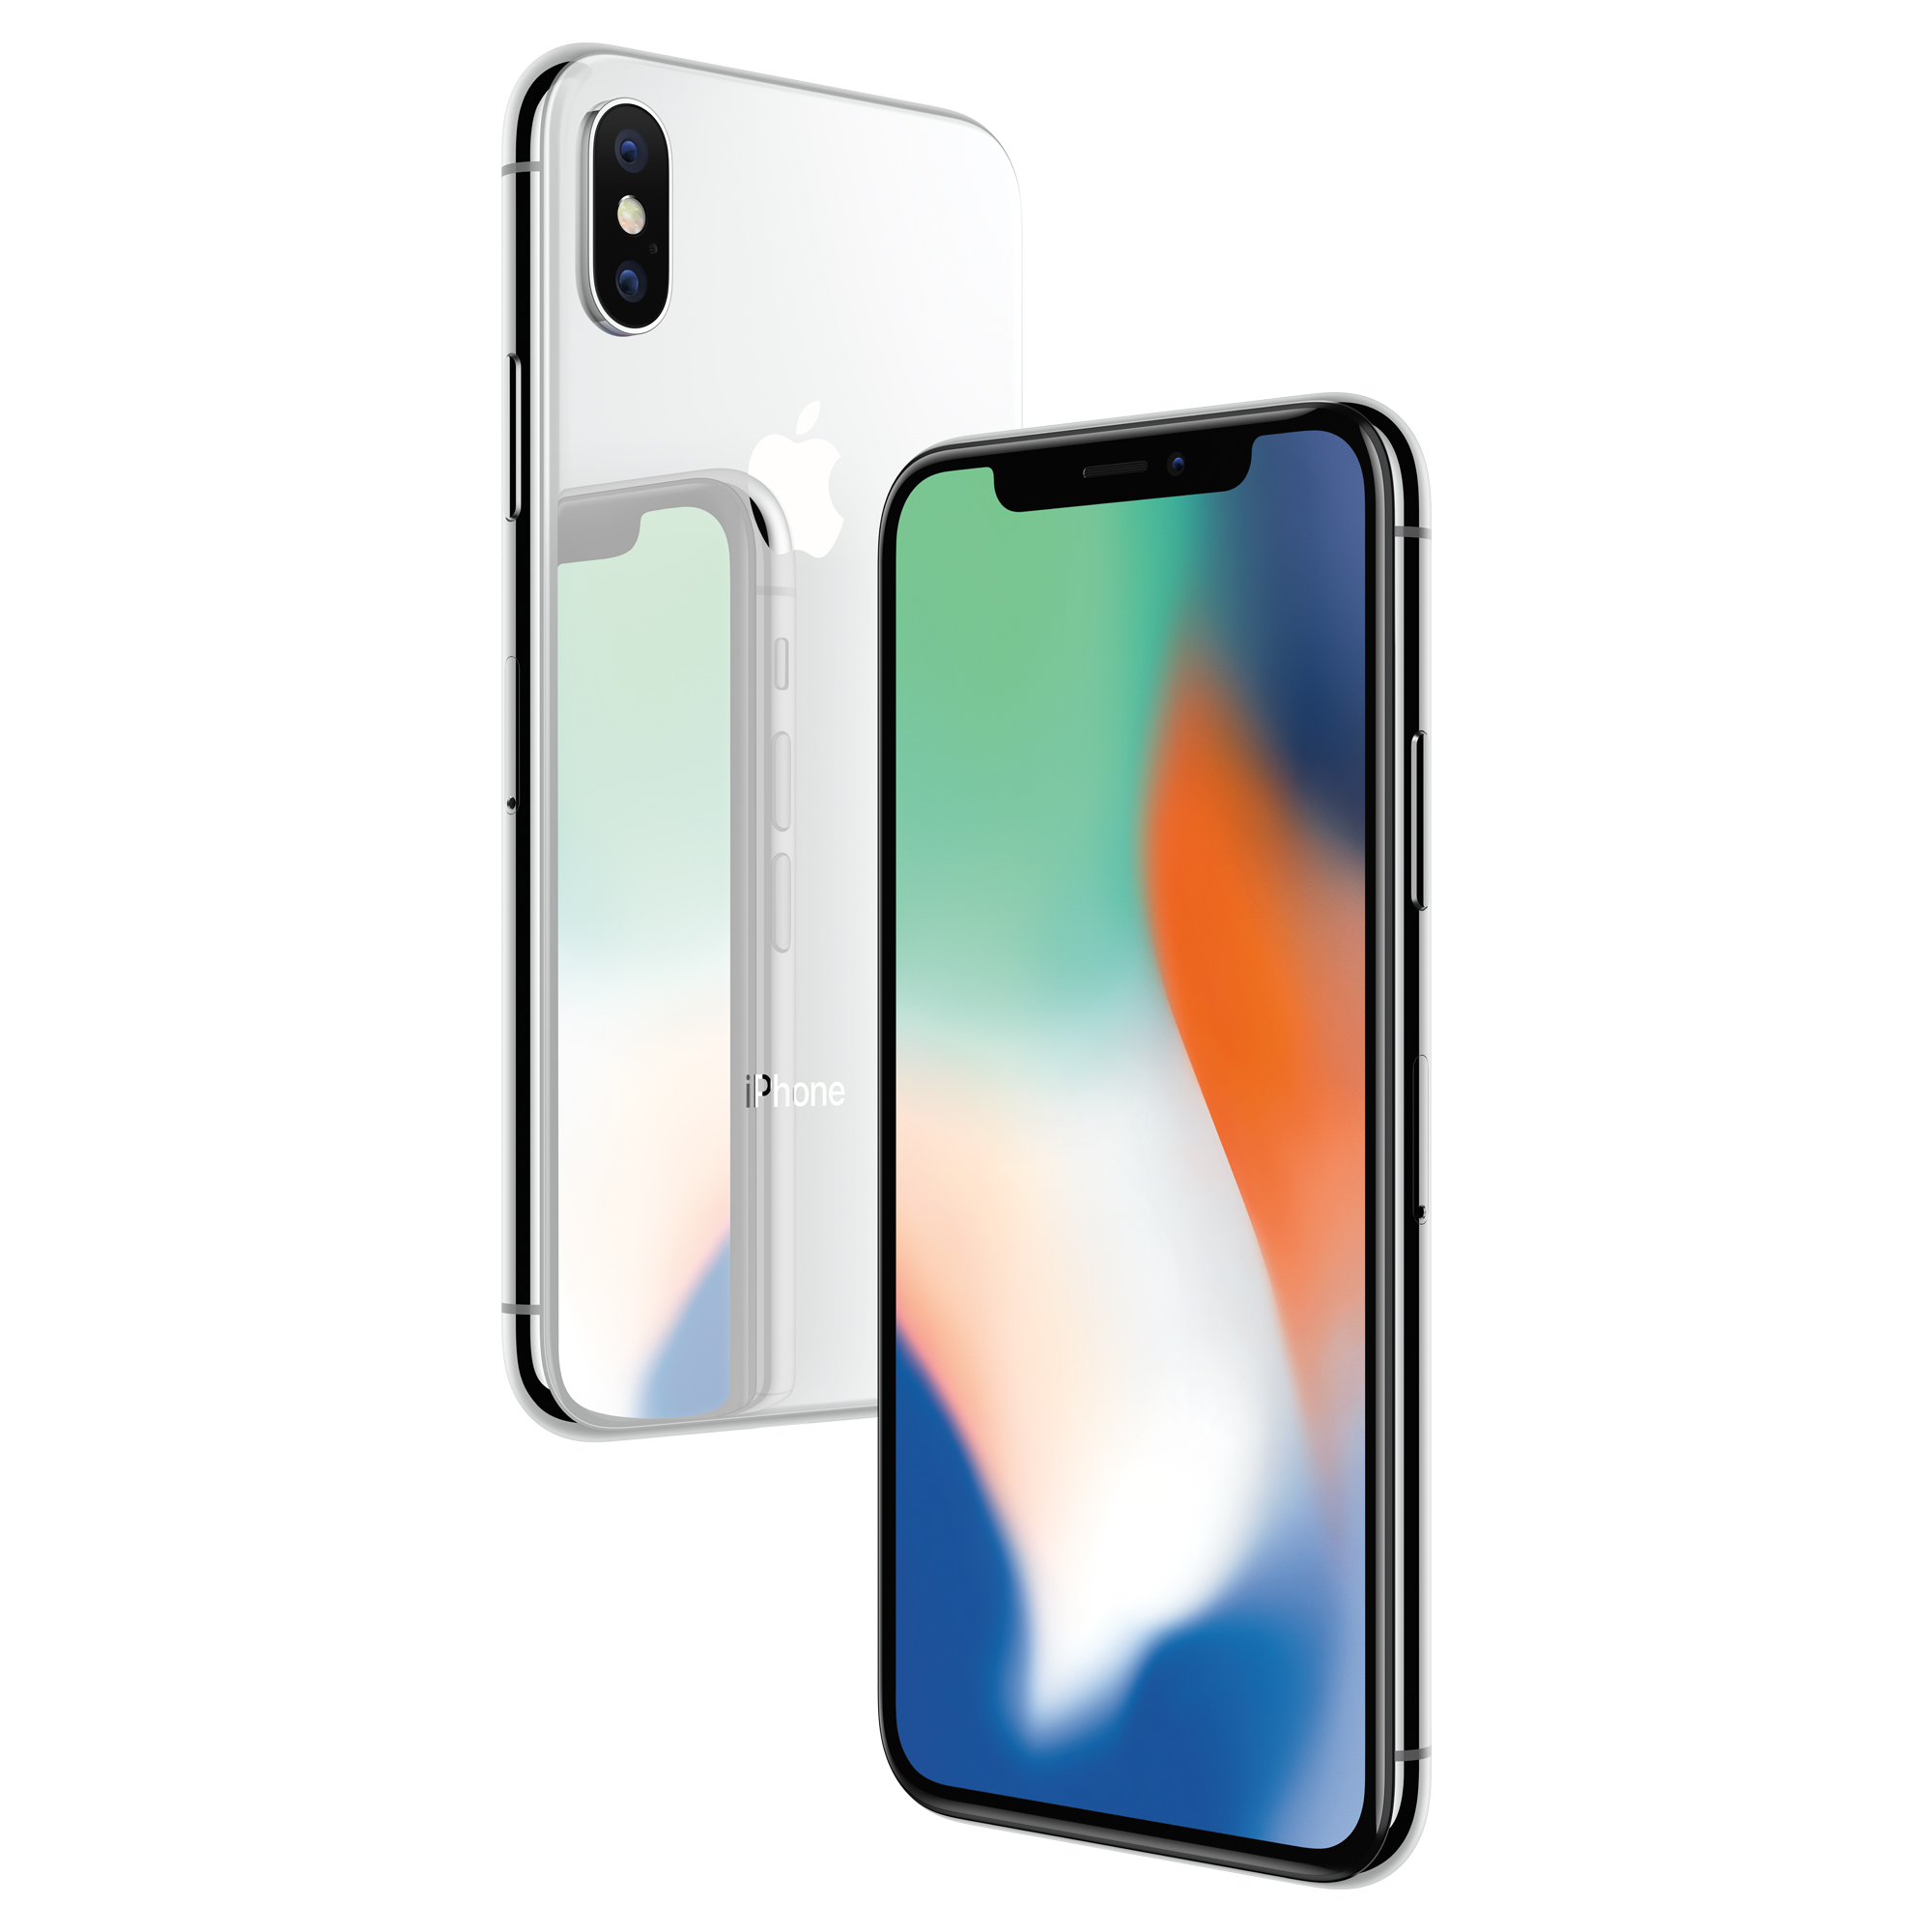 Total Wireless Prepaid Apple iPhone X 64GB, Silver